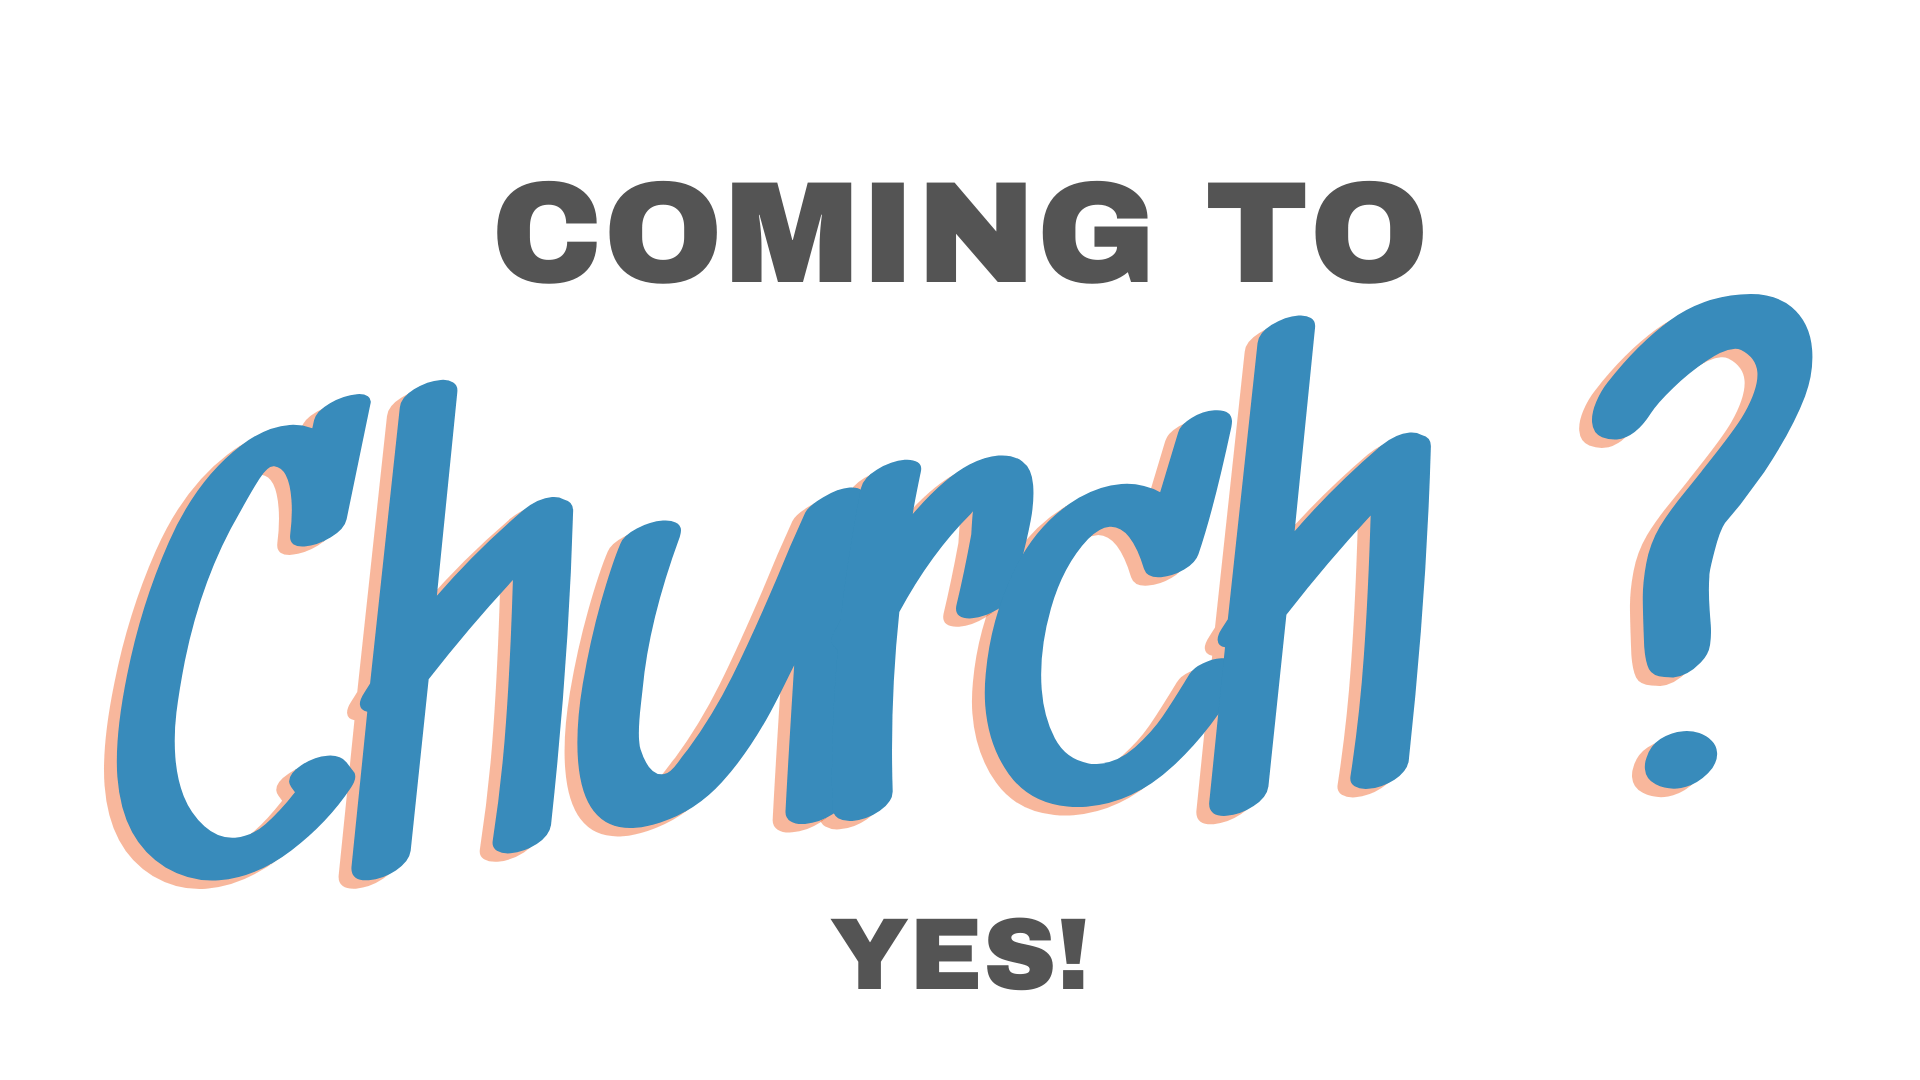 Coming to Church?